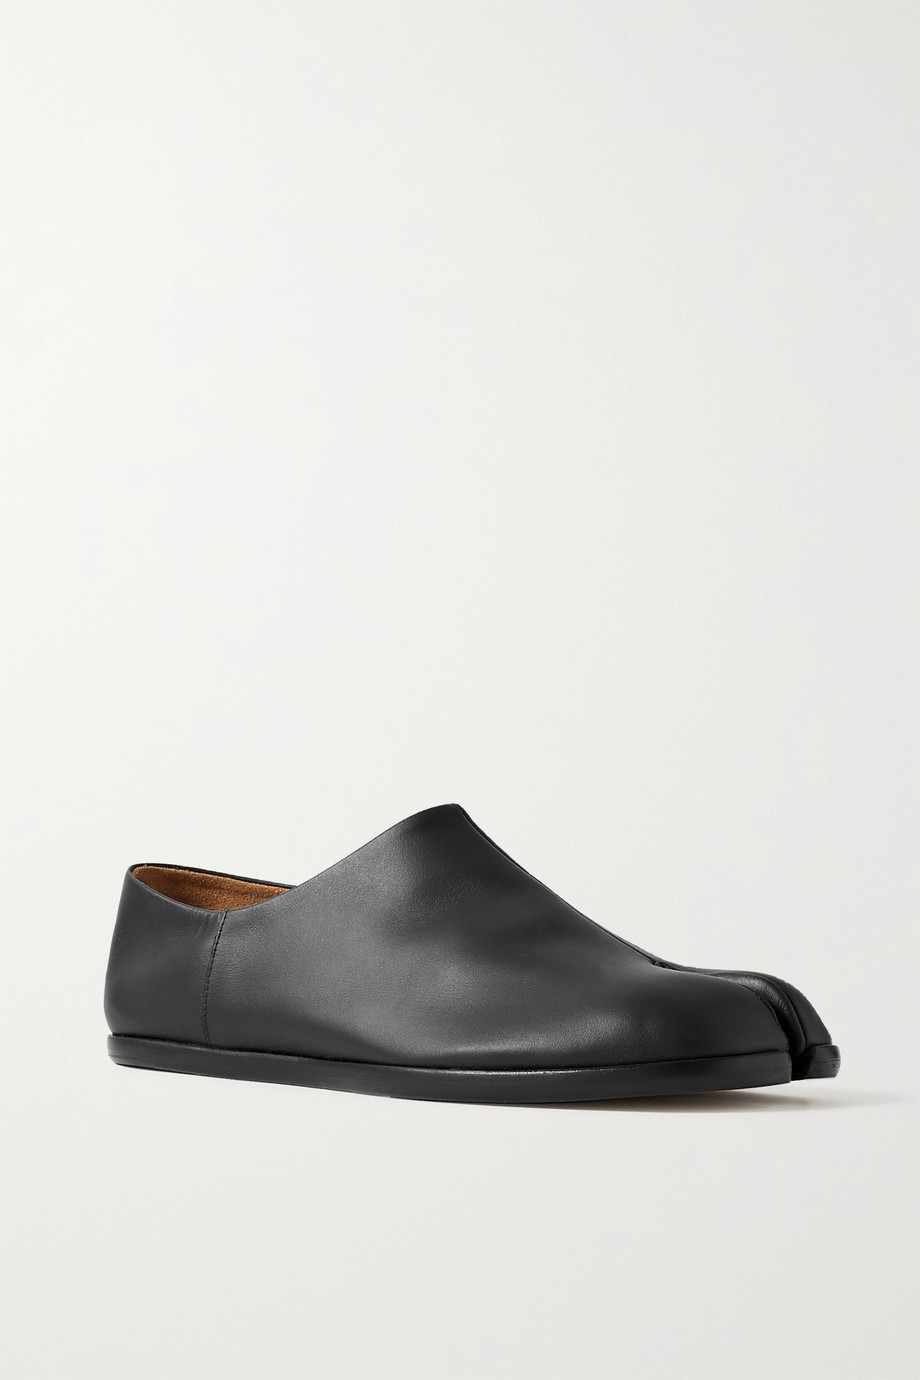 MAISON MARGIELA Split-toe leather collapsible-heel loafers